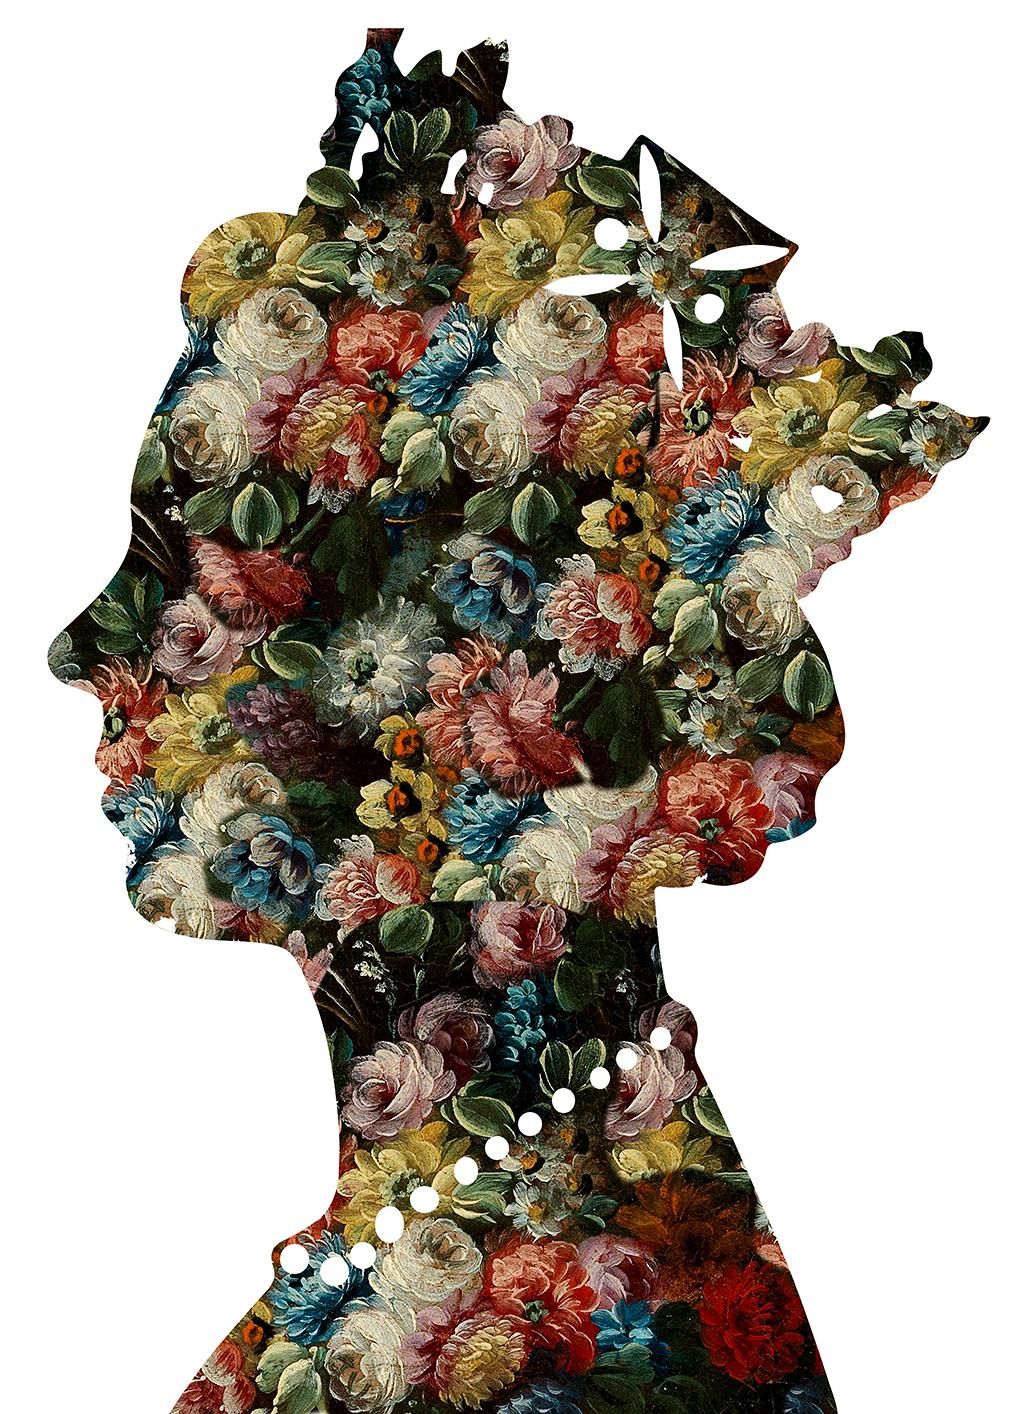 One Queen White - Botanical Royalty / Queen of Flowers: Digital Print